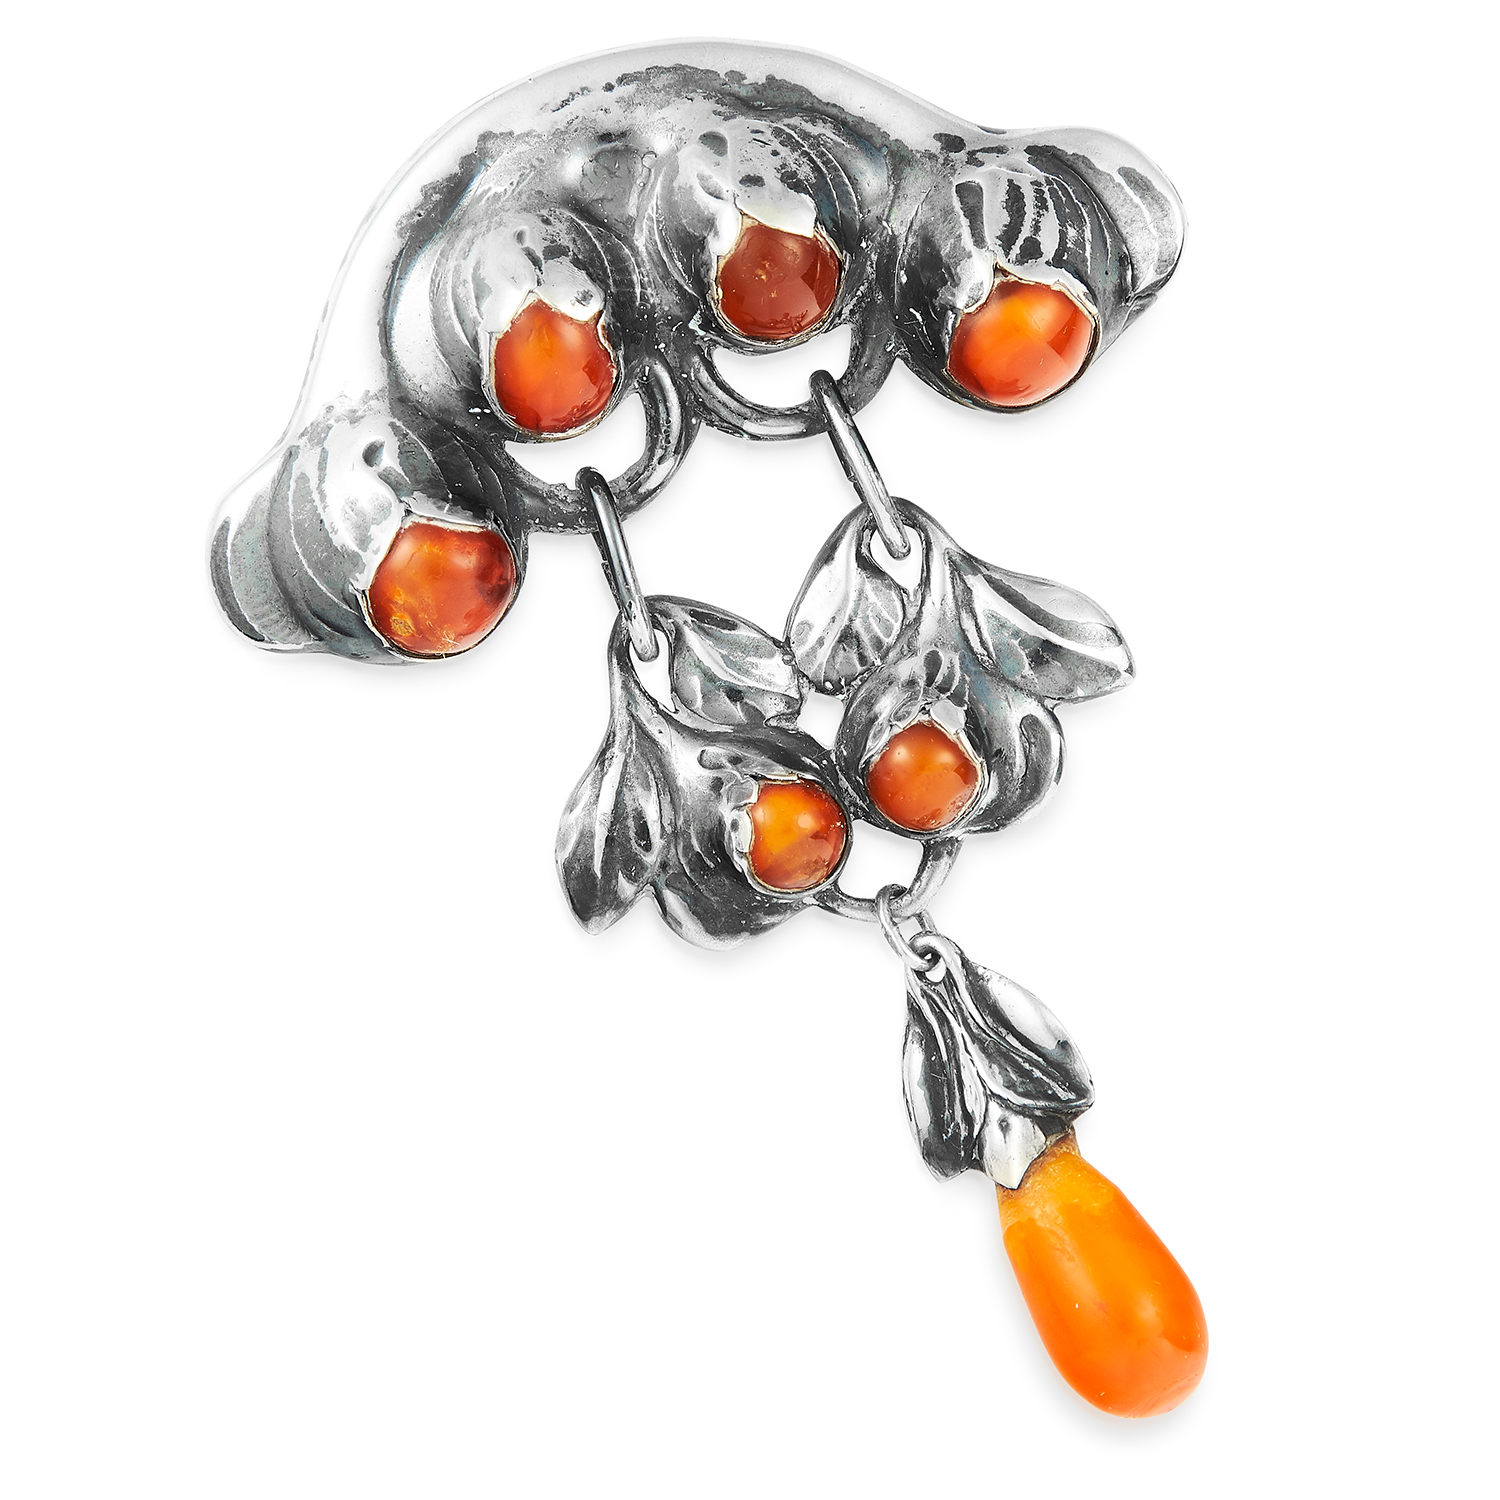 AMBER BROOCH, EVALD NIELSEN in sterling silver, set with cabochon amber and suspending an amber